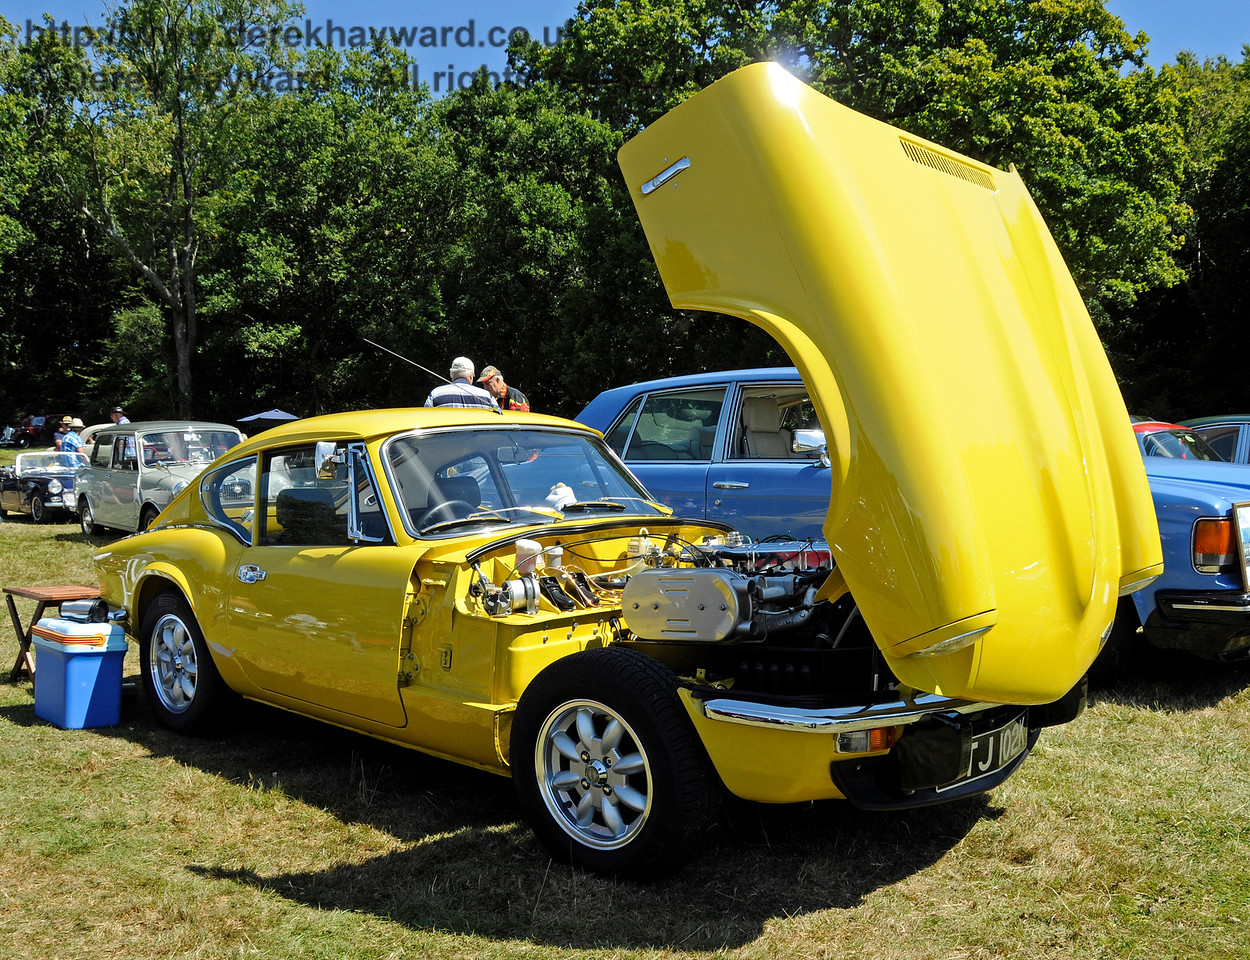 Highly commended in the Best Vintage Car category was Ian Gordon with his Triumph GT6 Mk 3, GTJ102K.  Vintage Transport Weekend, Horsted Keynes.  09.08.2015   13614